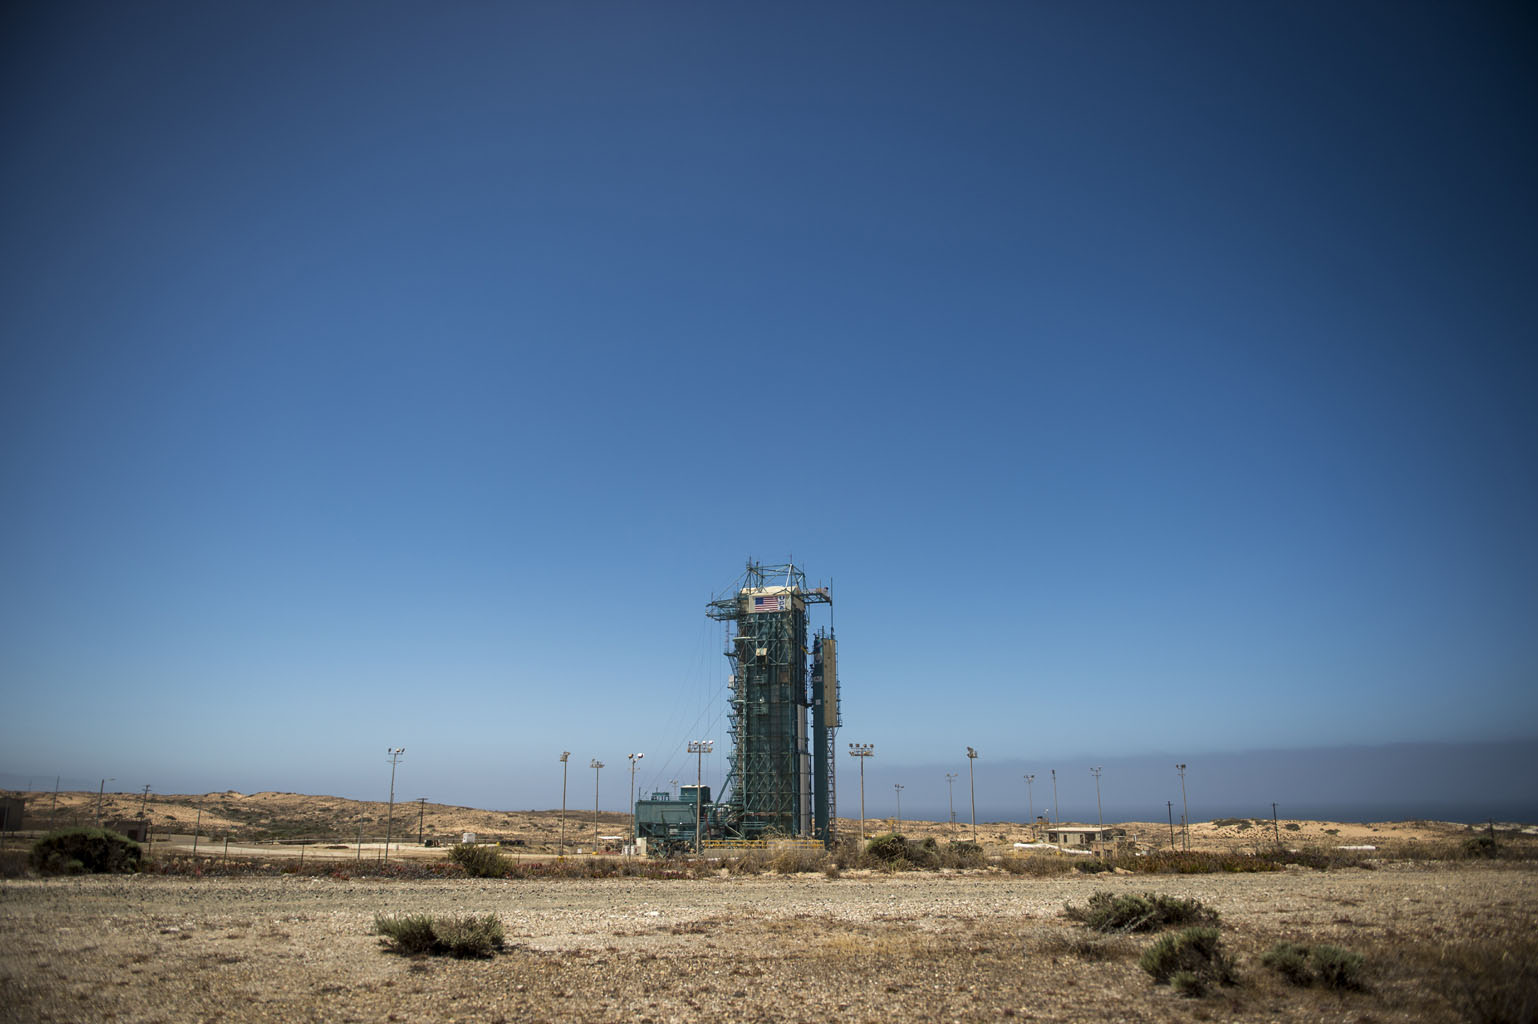 The launch gantry, surrounding the United Launch Alliance Delta II rocket with the Orbiting Carbon Observatory-2 (OCO-2) satellite onboard, is seen at Space Launch Complex 2, Sunday, June 29, 2014, Vandenberg Air Force Base, Calif.